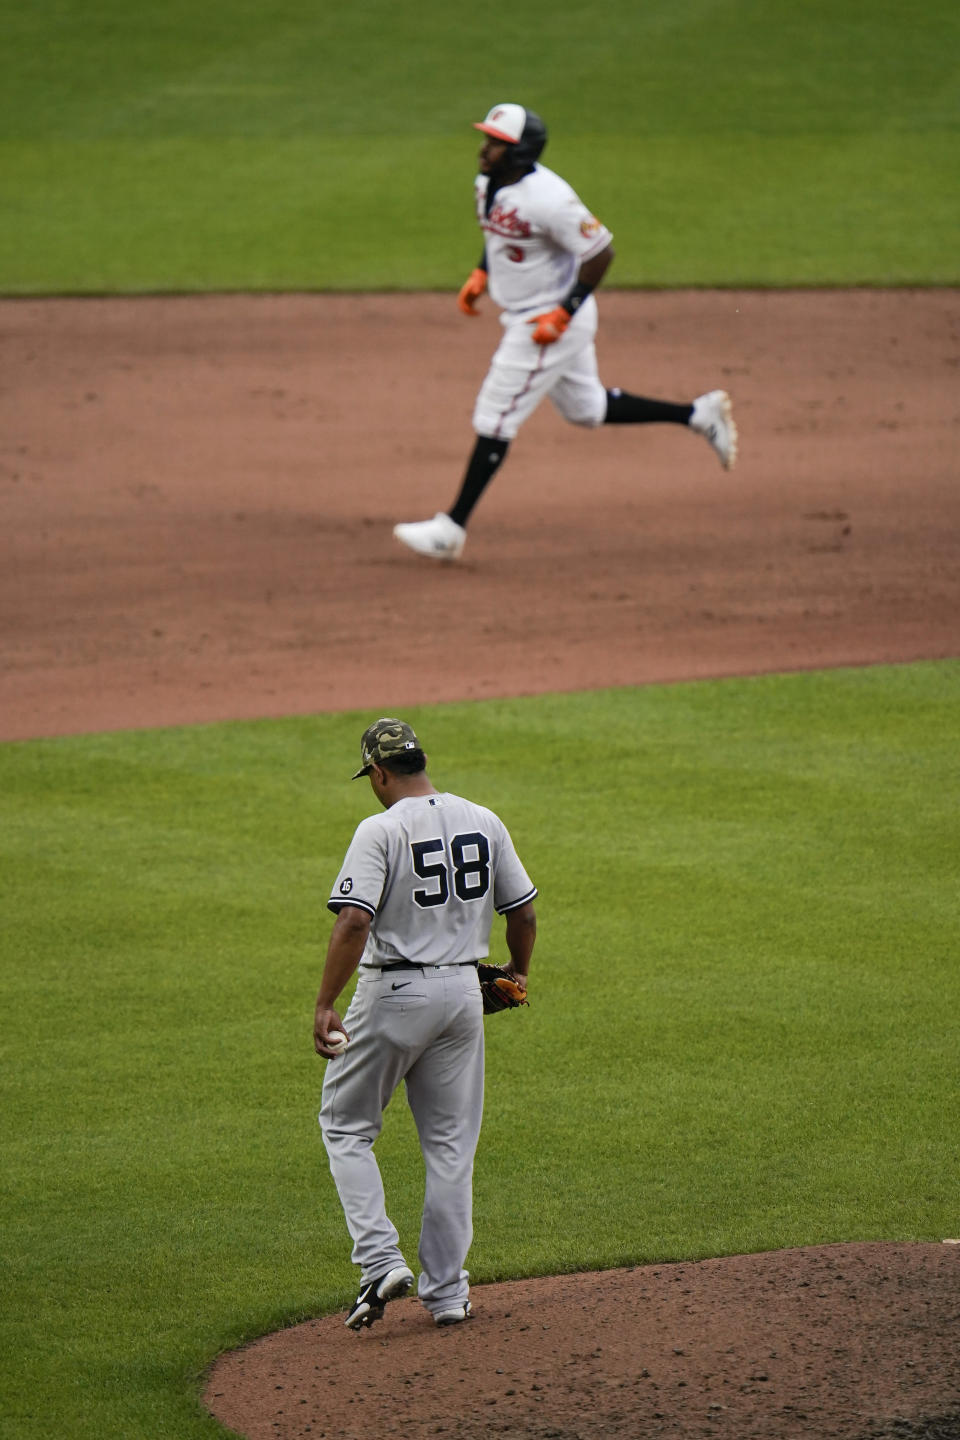 Baltimore Orioles' Maikel Franco, top, runs the bases after hitting a two-run home run off New York Yankees relief pitcher Wandy Peralta (58) during the seventh inning of a baseball game, Sunday, May 16, 2021, in Baltimore. Orioles' Pedro Severino scored on the play. (AP Photo/Julio Cortez)